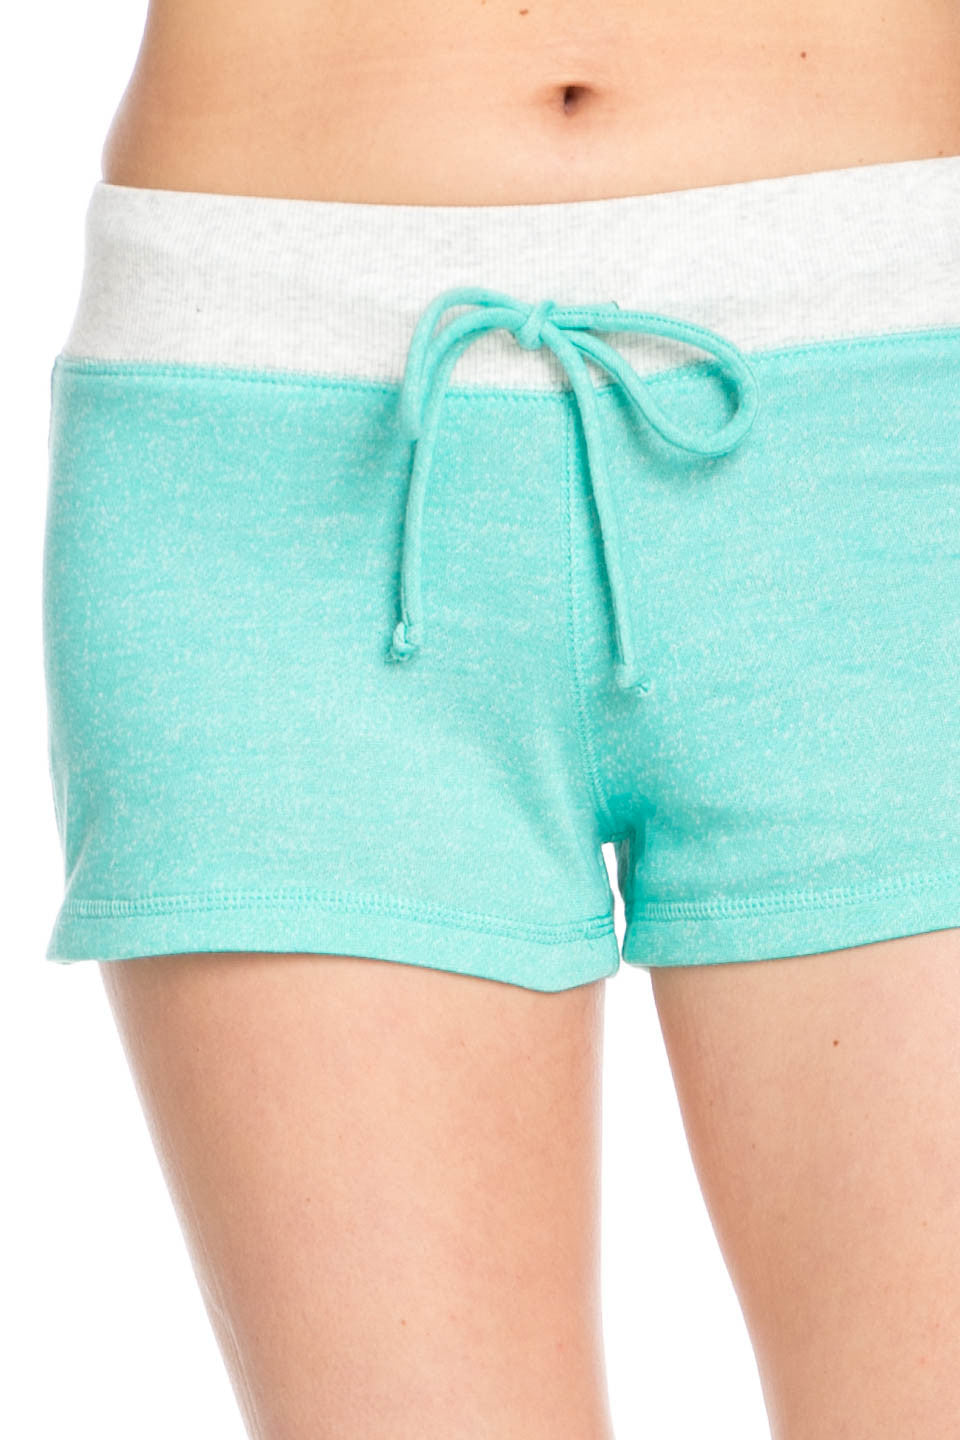 Contrast French Terry Knit Mint Shorts - Shorts - My Yuccie - 6